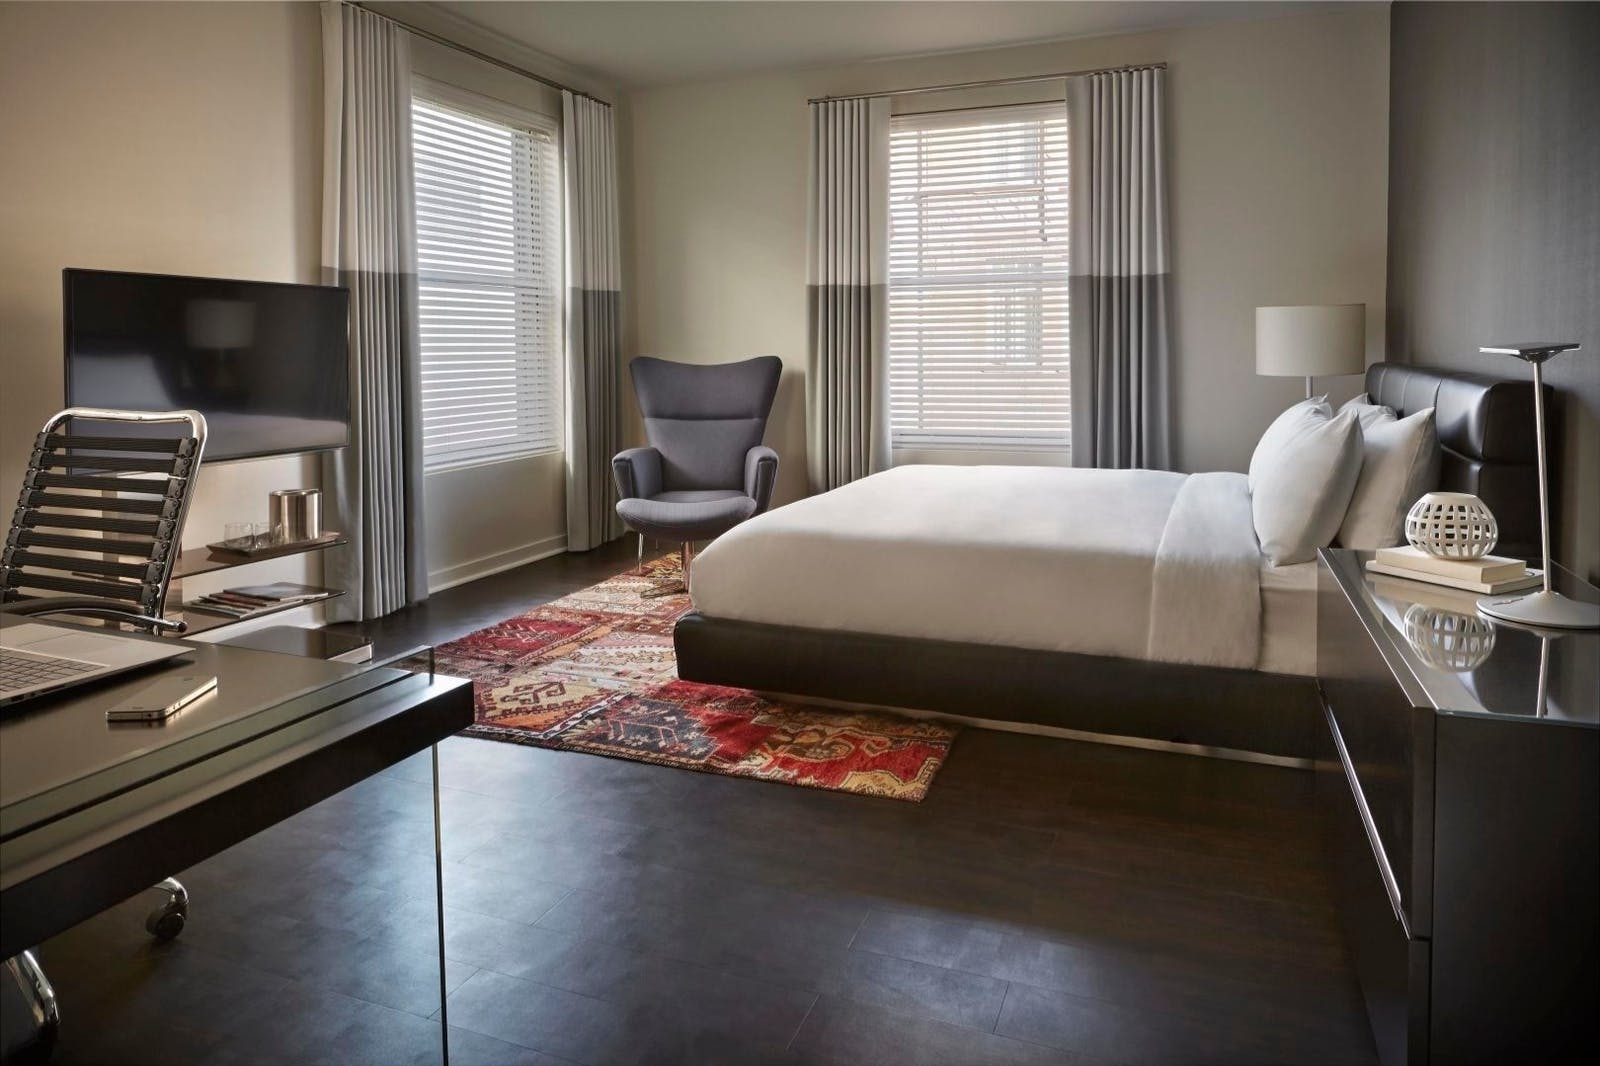 Premier Room at Hotel Zetta, San Francisco, California